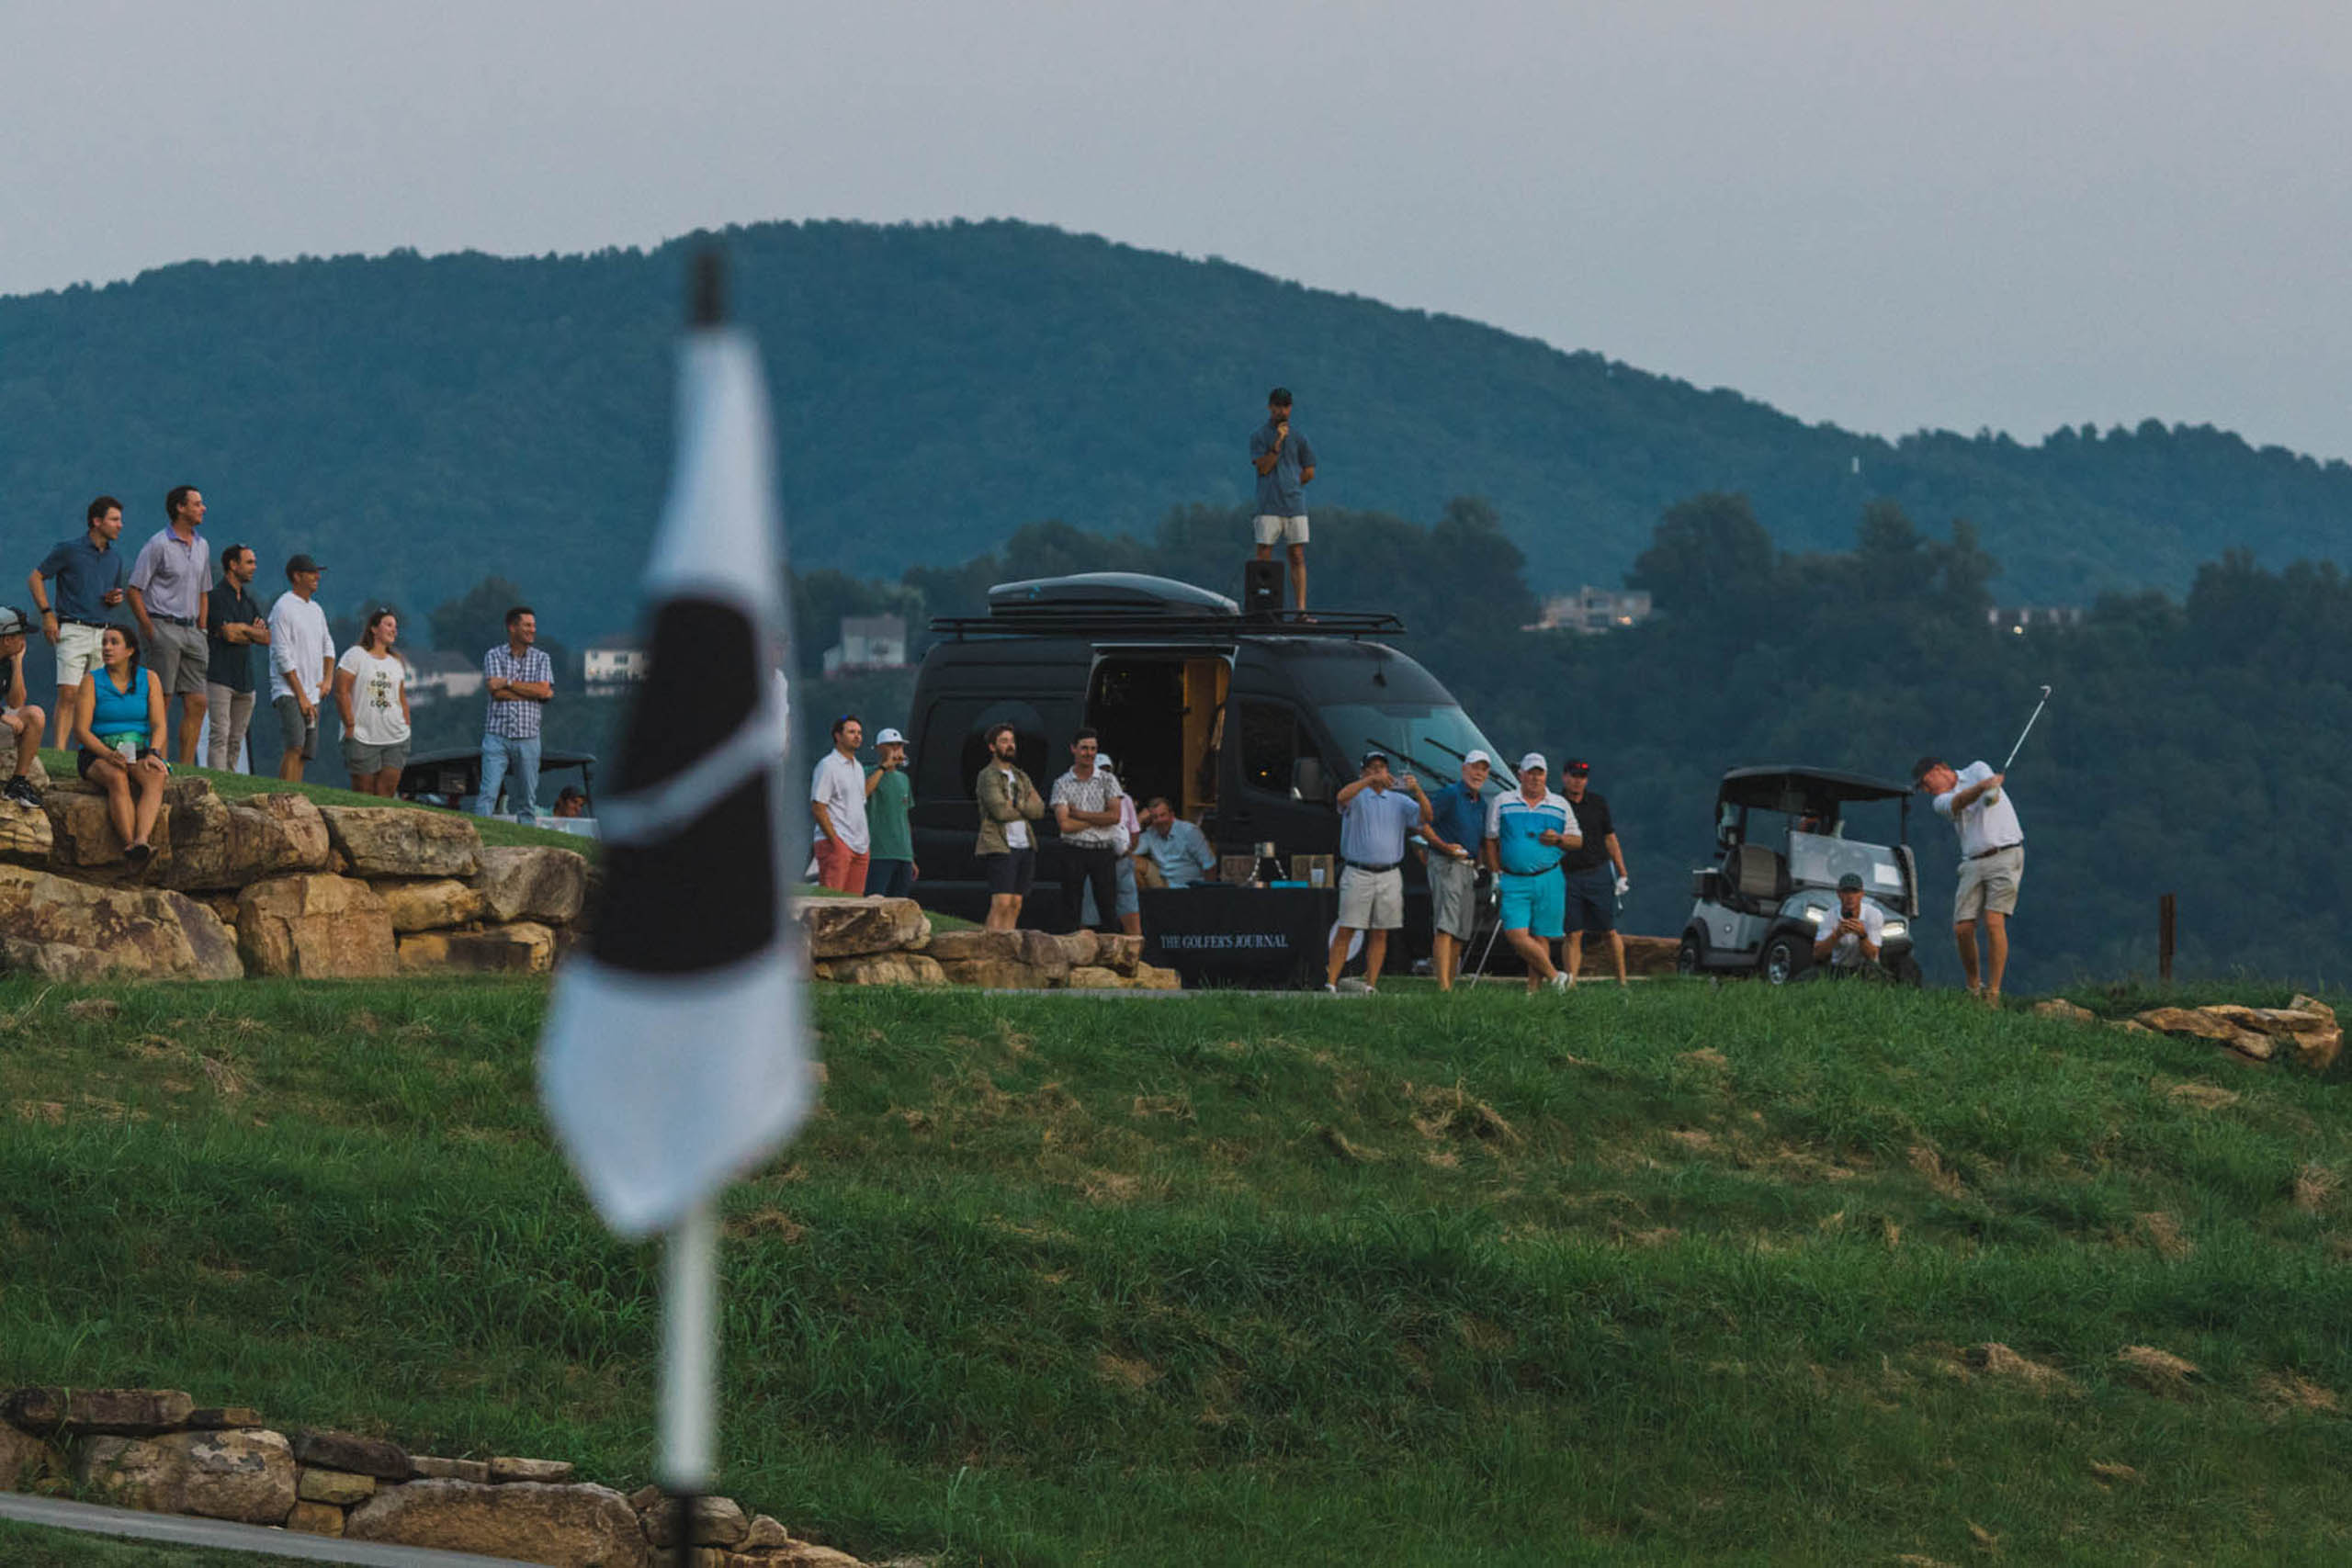 After two days of demanding golf in the Blue Ridge Mountains of Roanoke, VA left us with another three-way tie, we returned to the 18th hole for a sudden death playoff. Five holes and over an hour later, TGJ Senior Editor Tom Coyne tapped in to add his and Joel Morgan's name to the trophy.